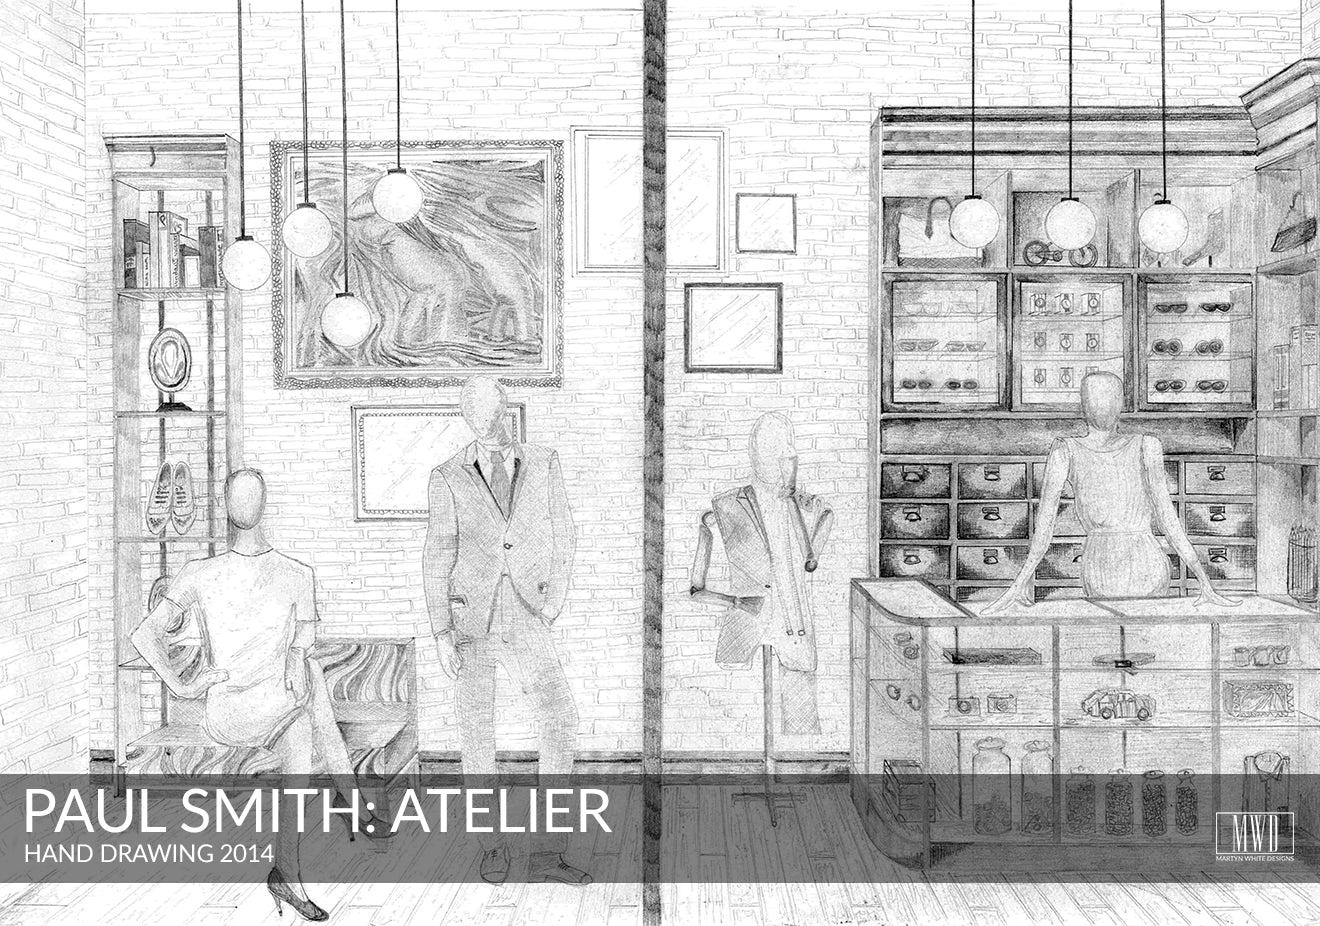 Paul Smith Atelier Hand Drawing Martyn White Designs